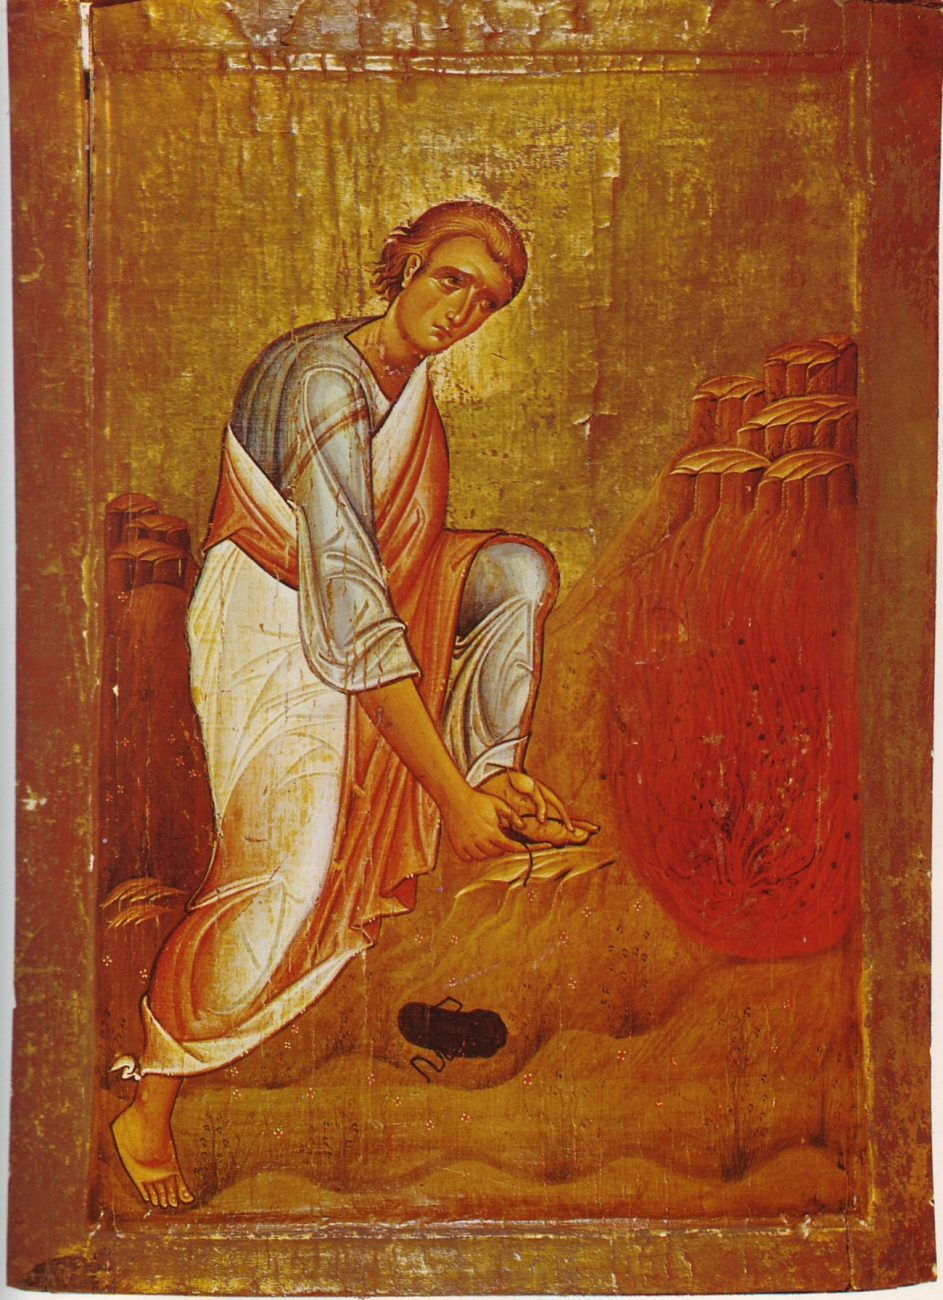 Moses and the burning bush. Loca sancta icon from the 12th (13th?) century. Image Credit: Wikimedia Commons.